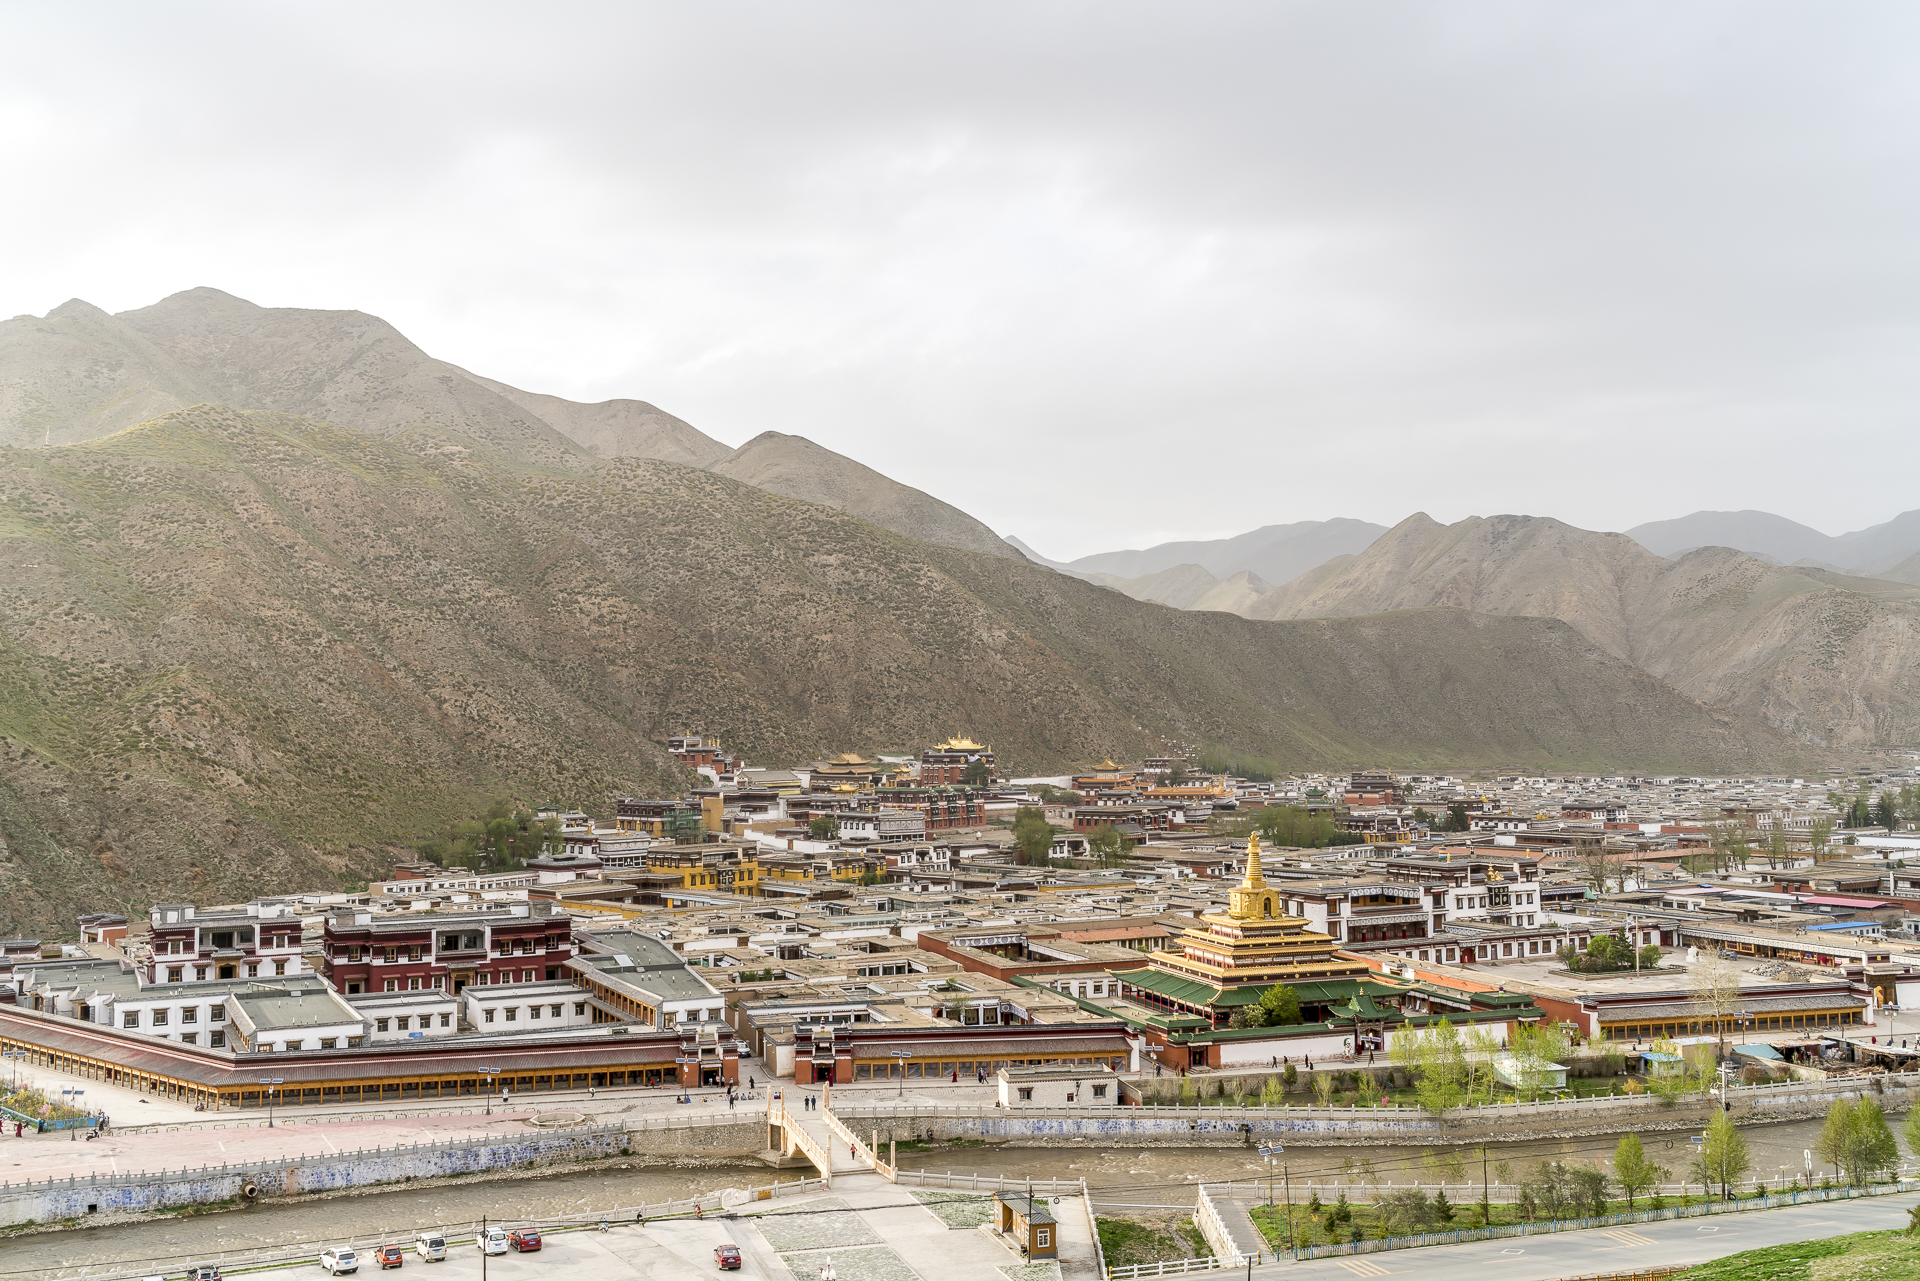 Labrangkloster Xiahe